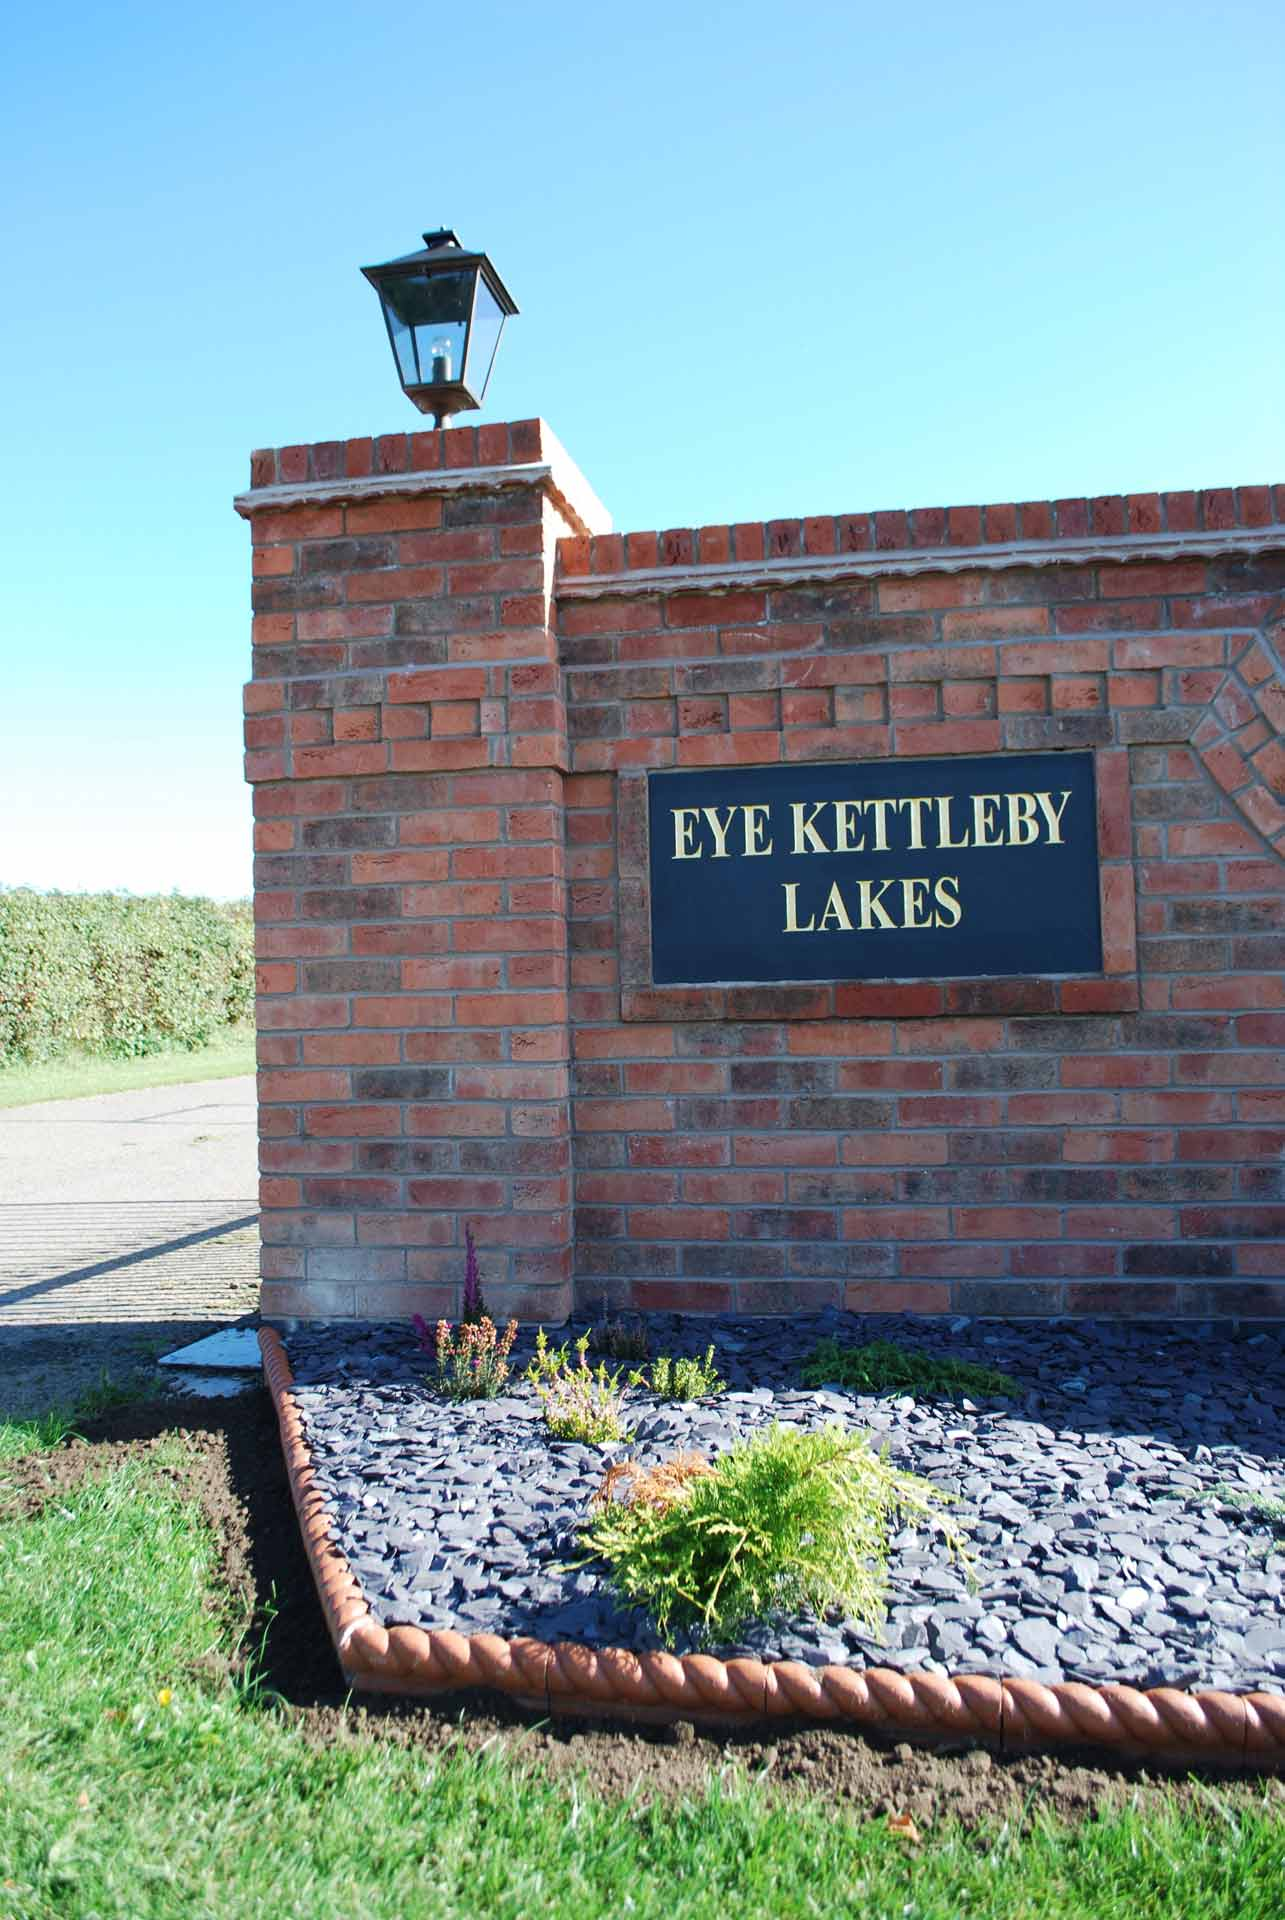 Oak-Lodge-Sign-Eye-Kettleby-Lakes